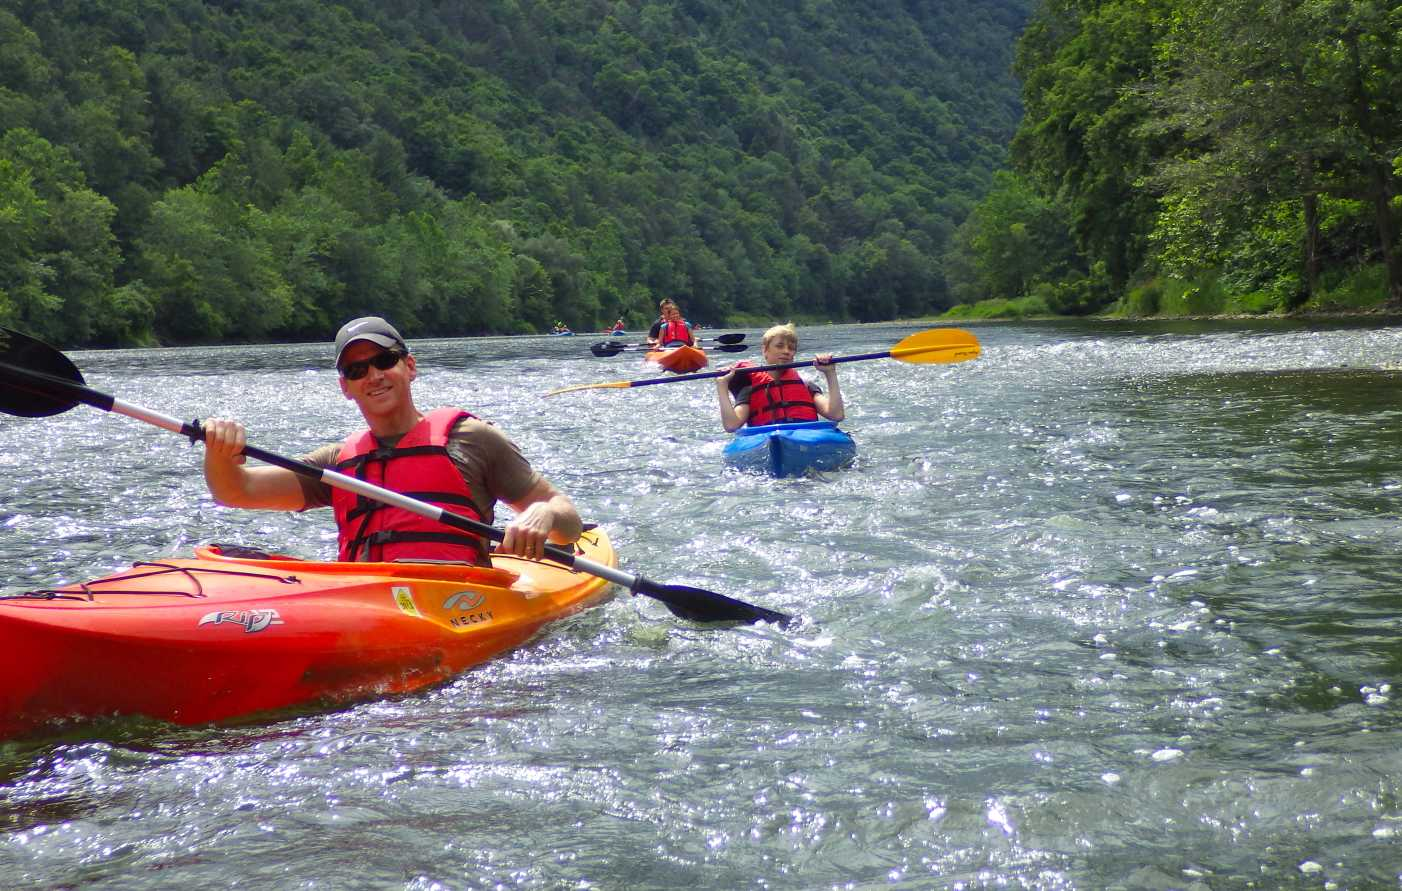 people kayaking down a river